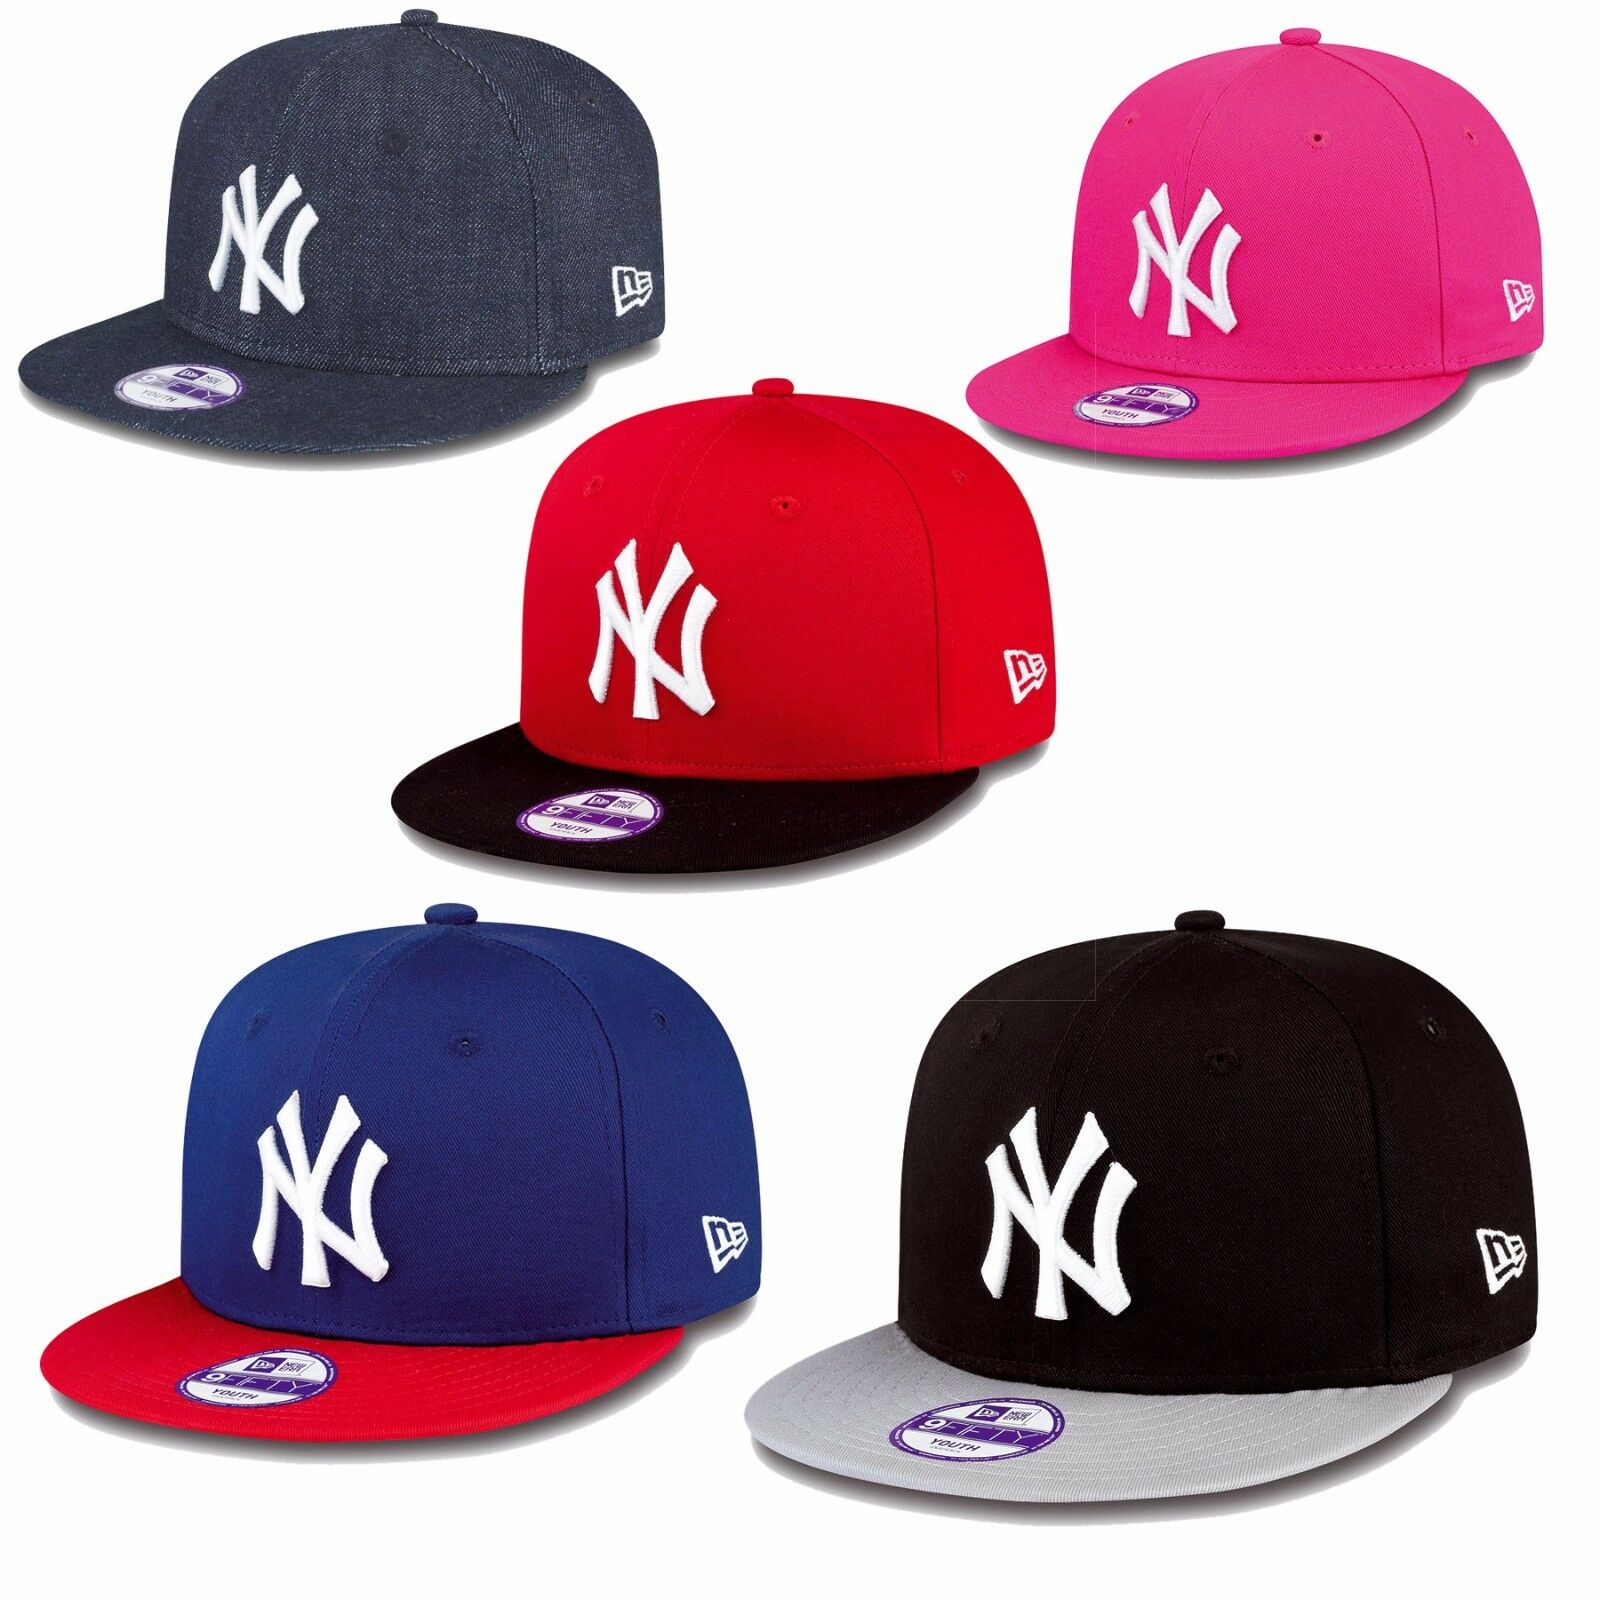 New Era Cappello 59fifty Fitted York Yankees Chicago Bulls Superman Hornets Uvm